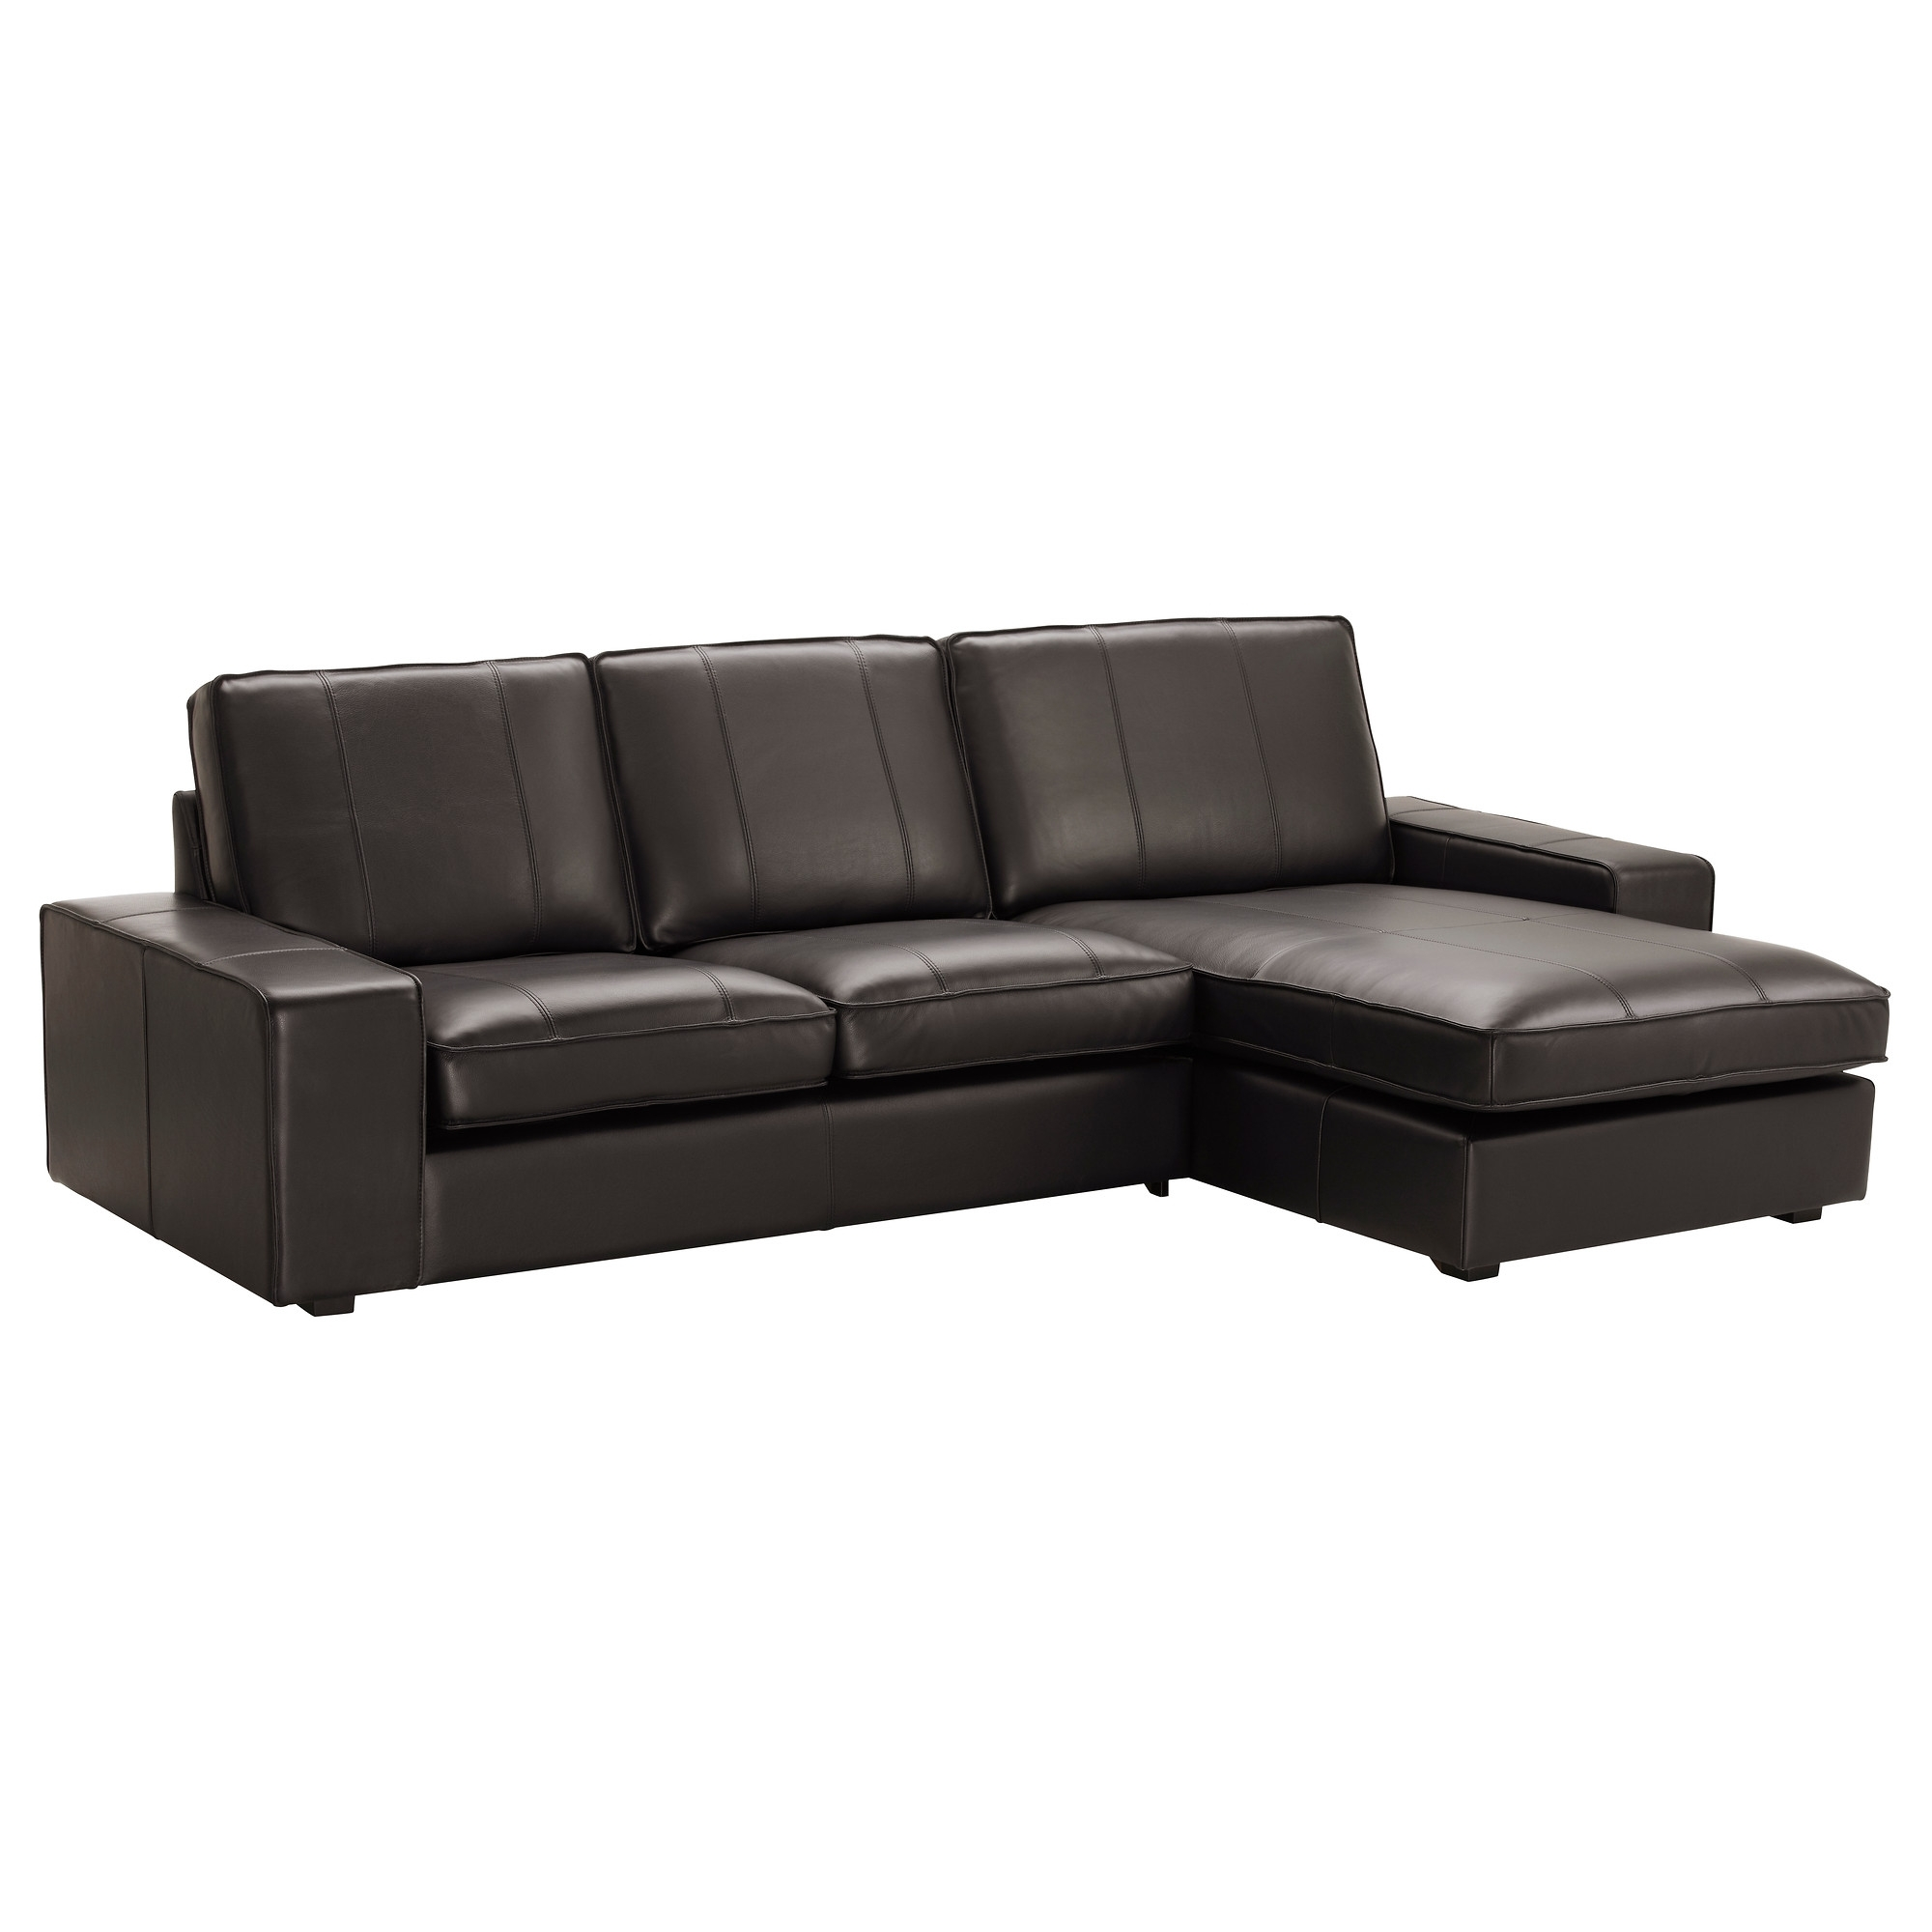 Recent Kivik Sofa – With Chaise/grann/bomstad Black – Ikea Within Ikea Chaise Sofas (View 13 of 15)